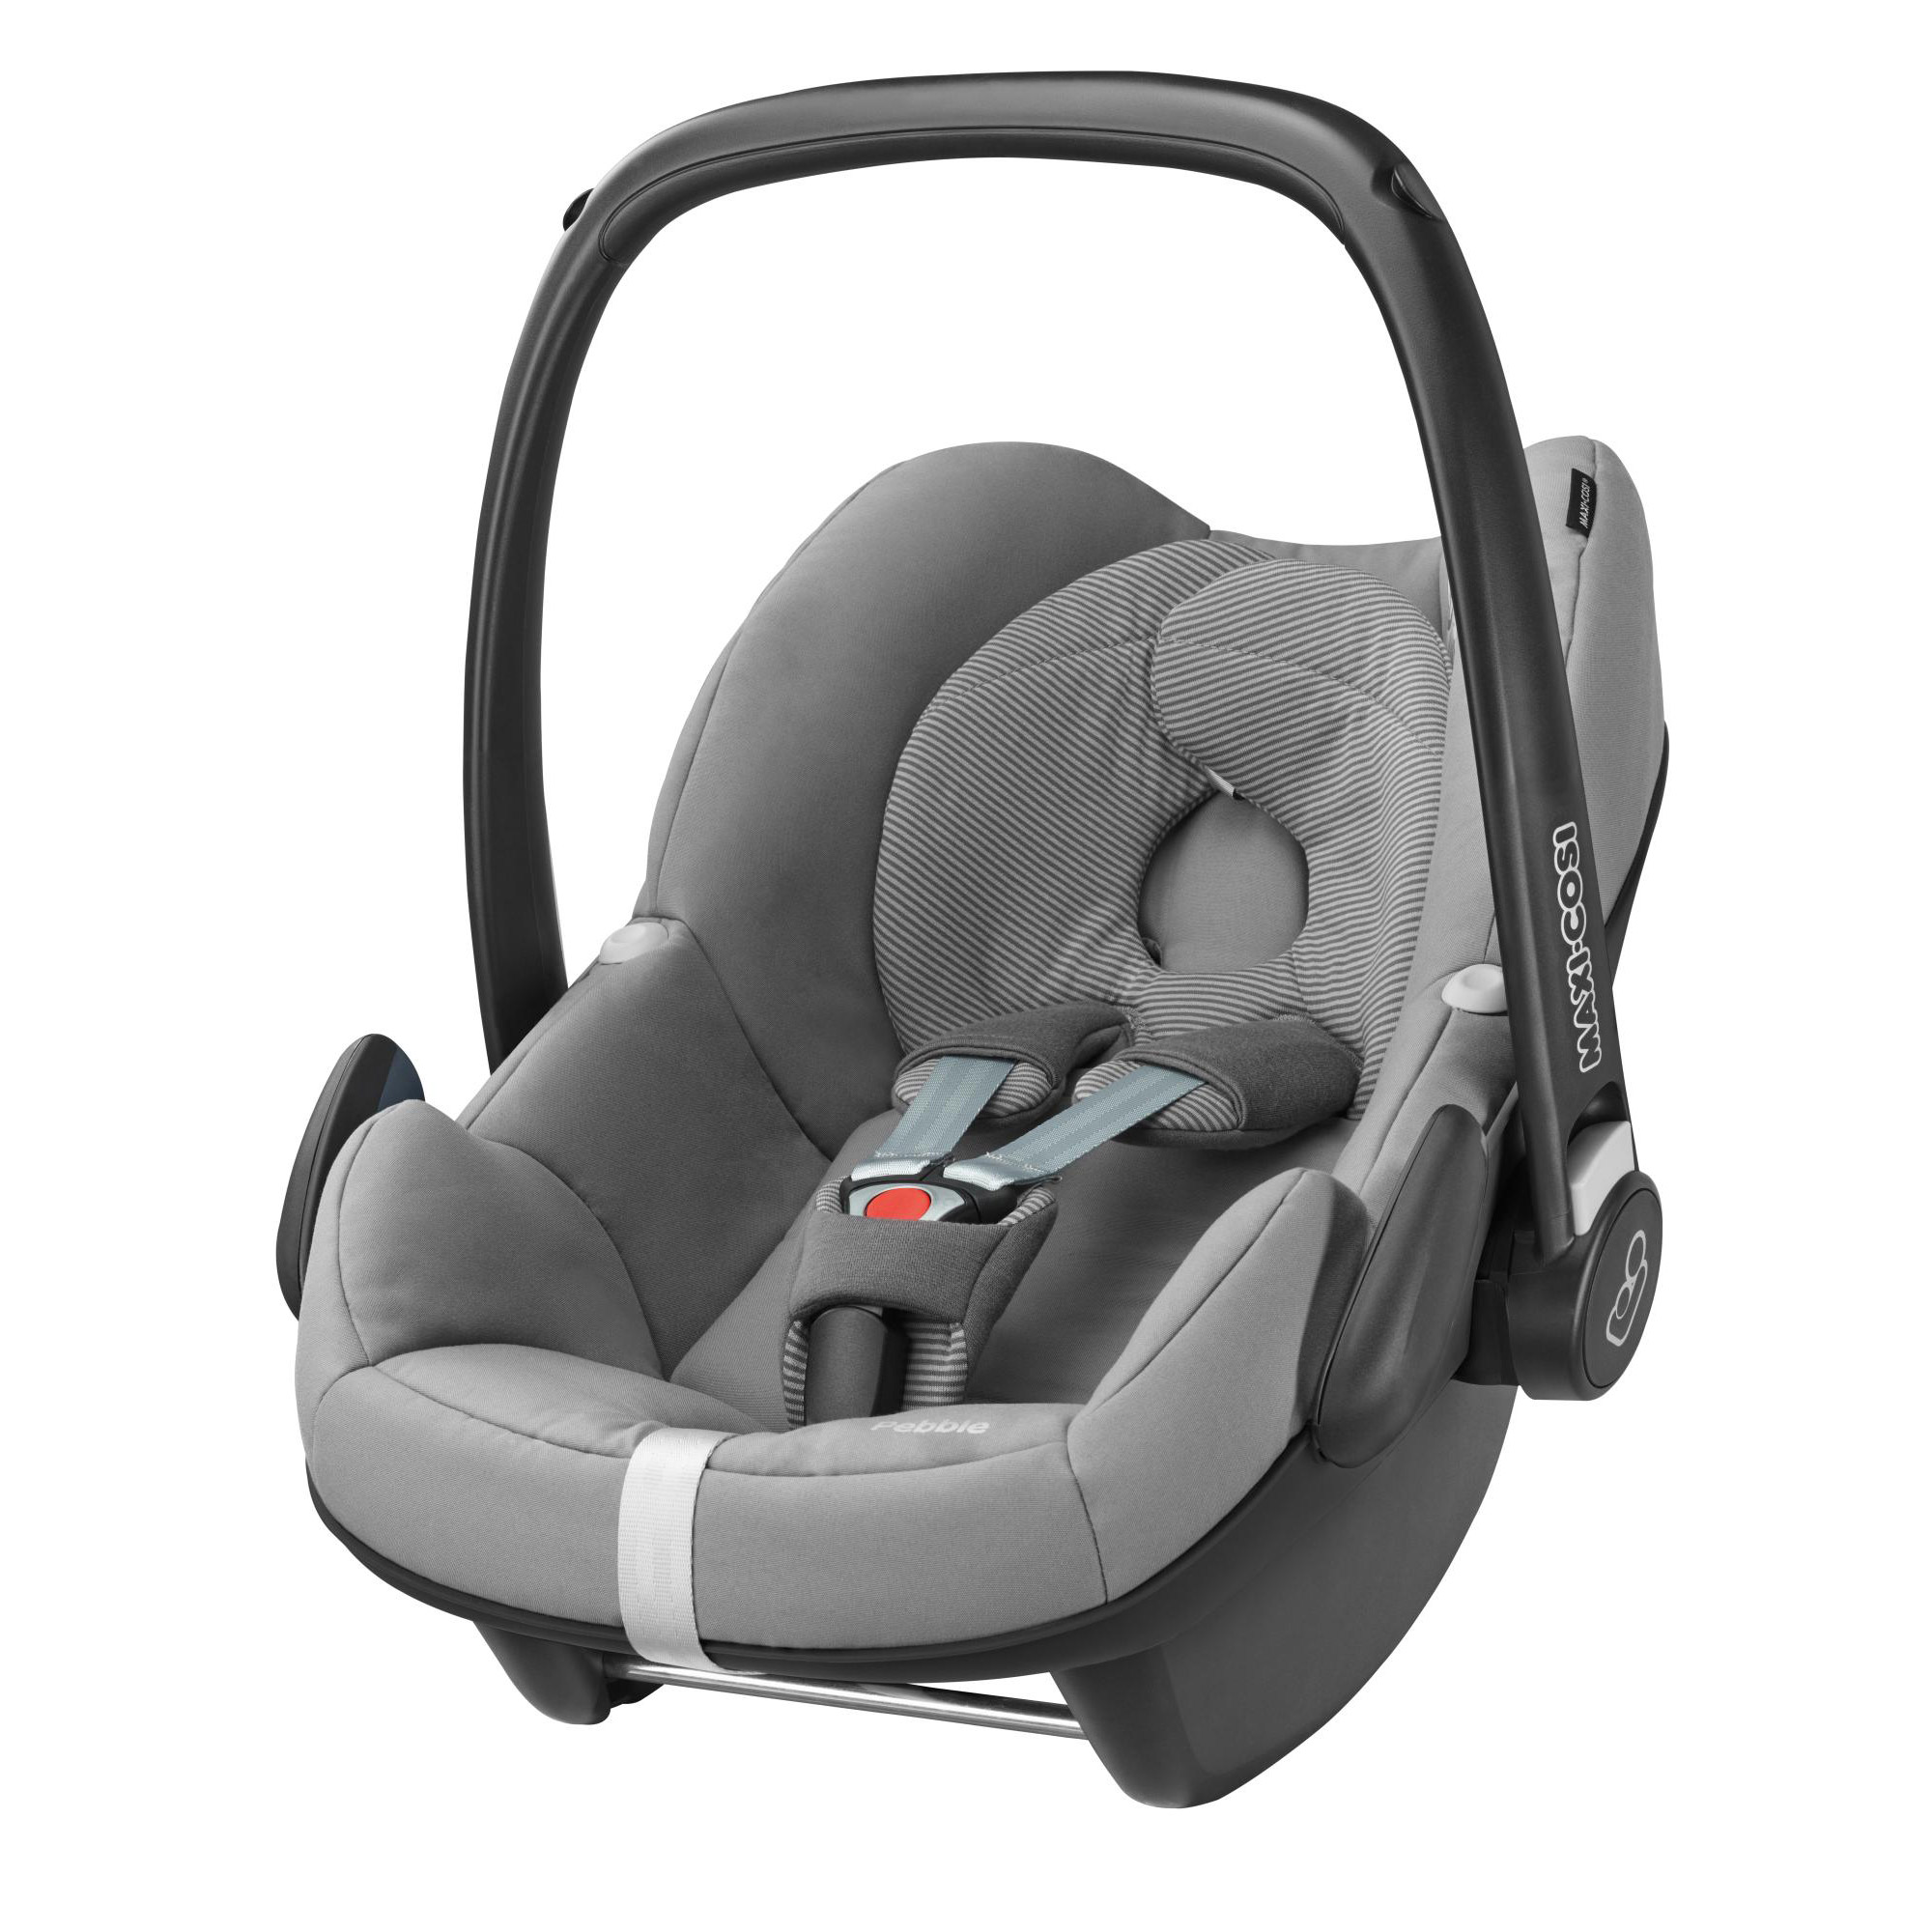 Автокресло Maxi-Cosi Pebble Concrete Grey